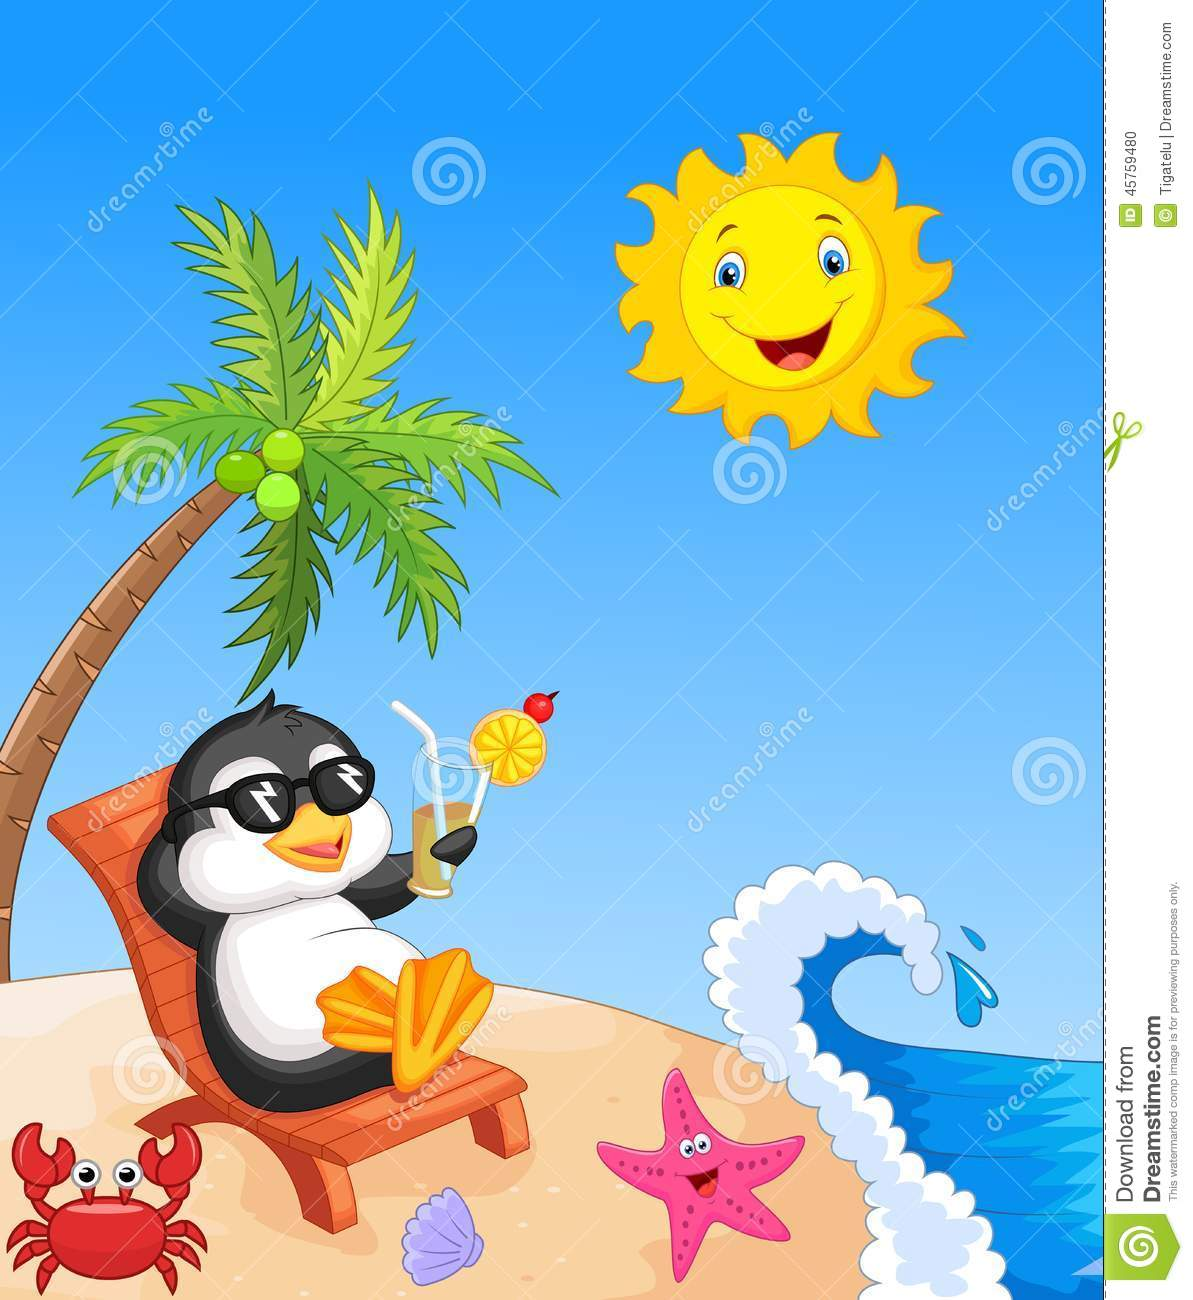 Cute penguin cartoon sitting on beach chair stock vector cute penguin cartoon sitting on beach chair voltagebd Gallery